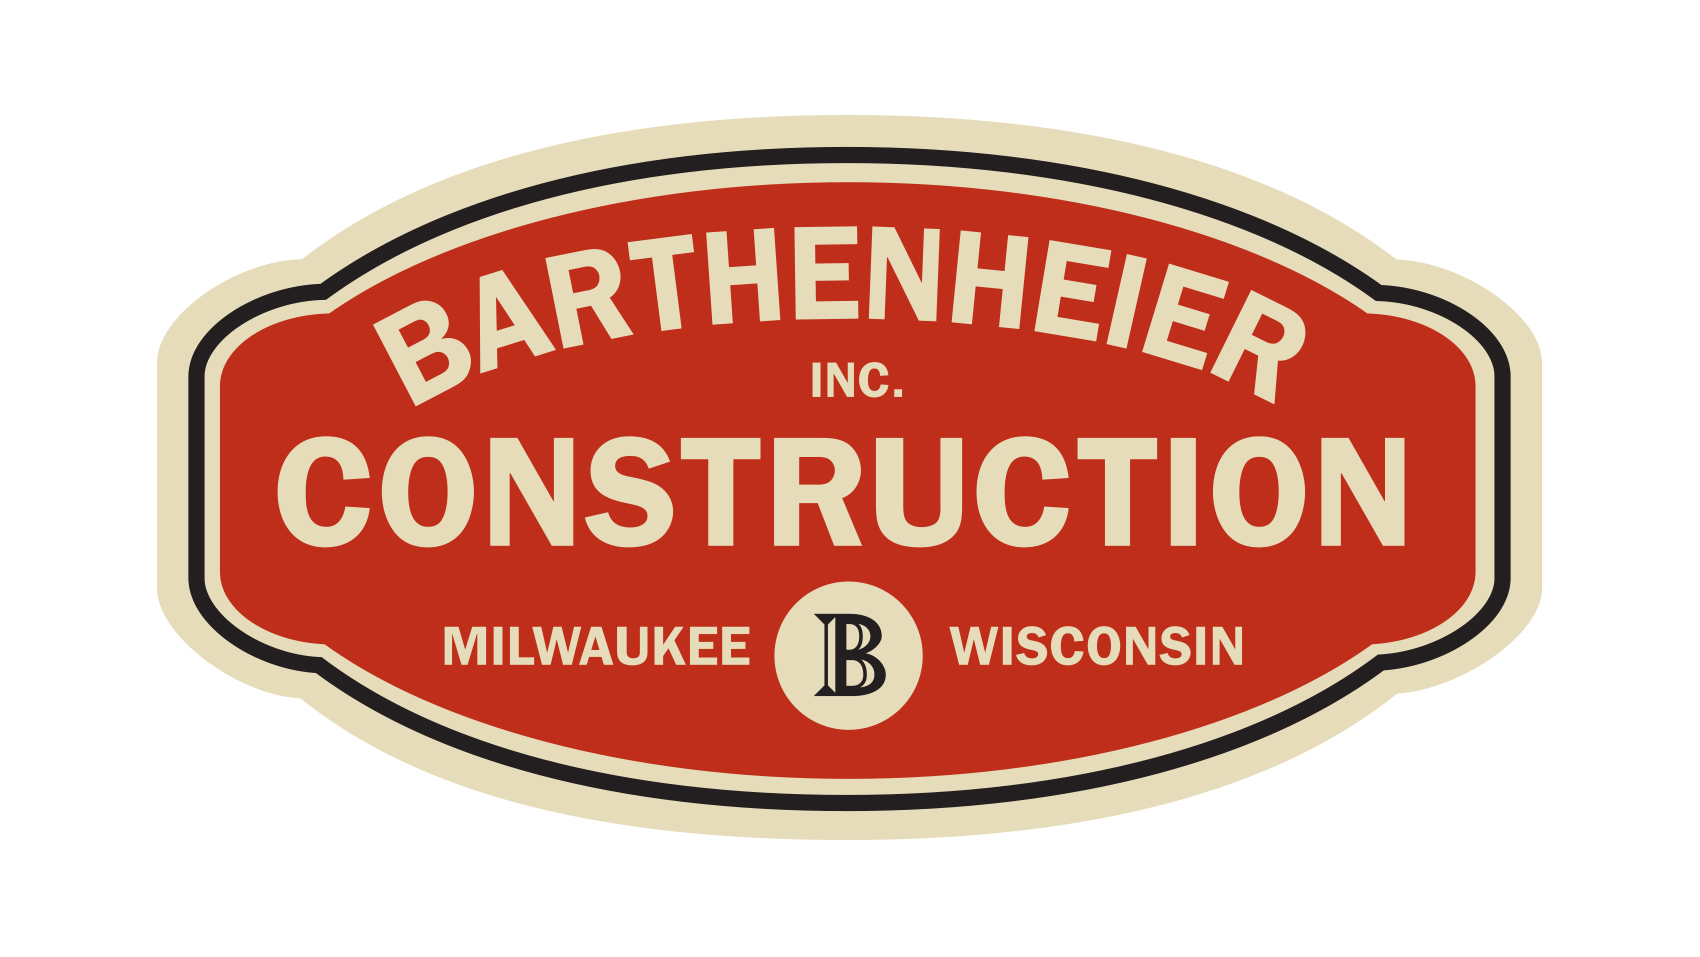 Batherheier Construction Logo